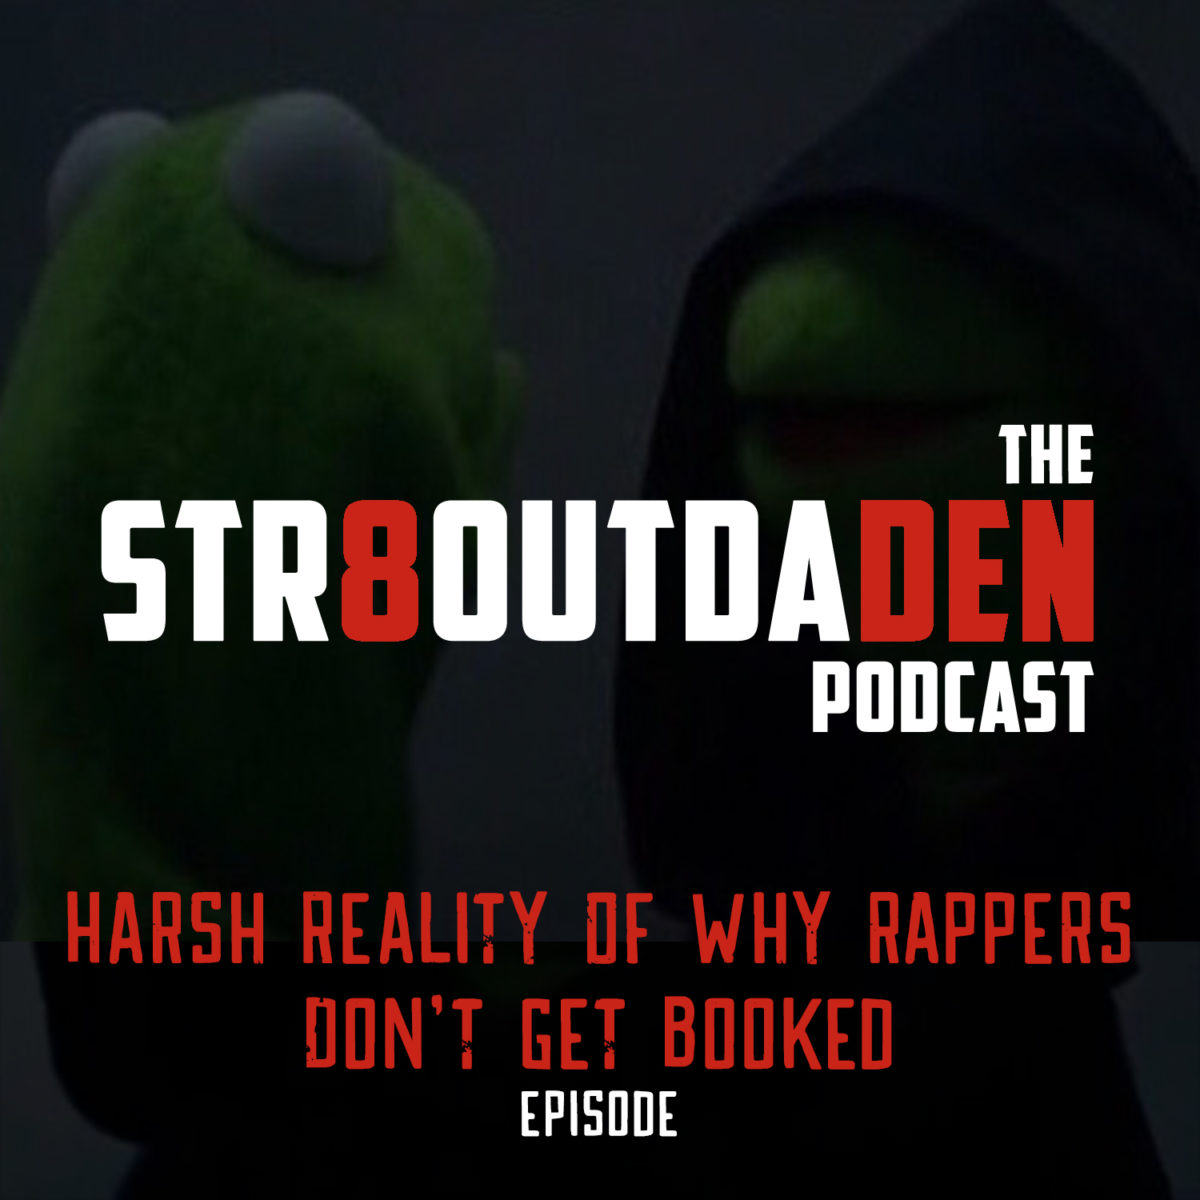 harsh-reality-of-why-rappers-dont-get-booked